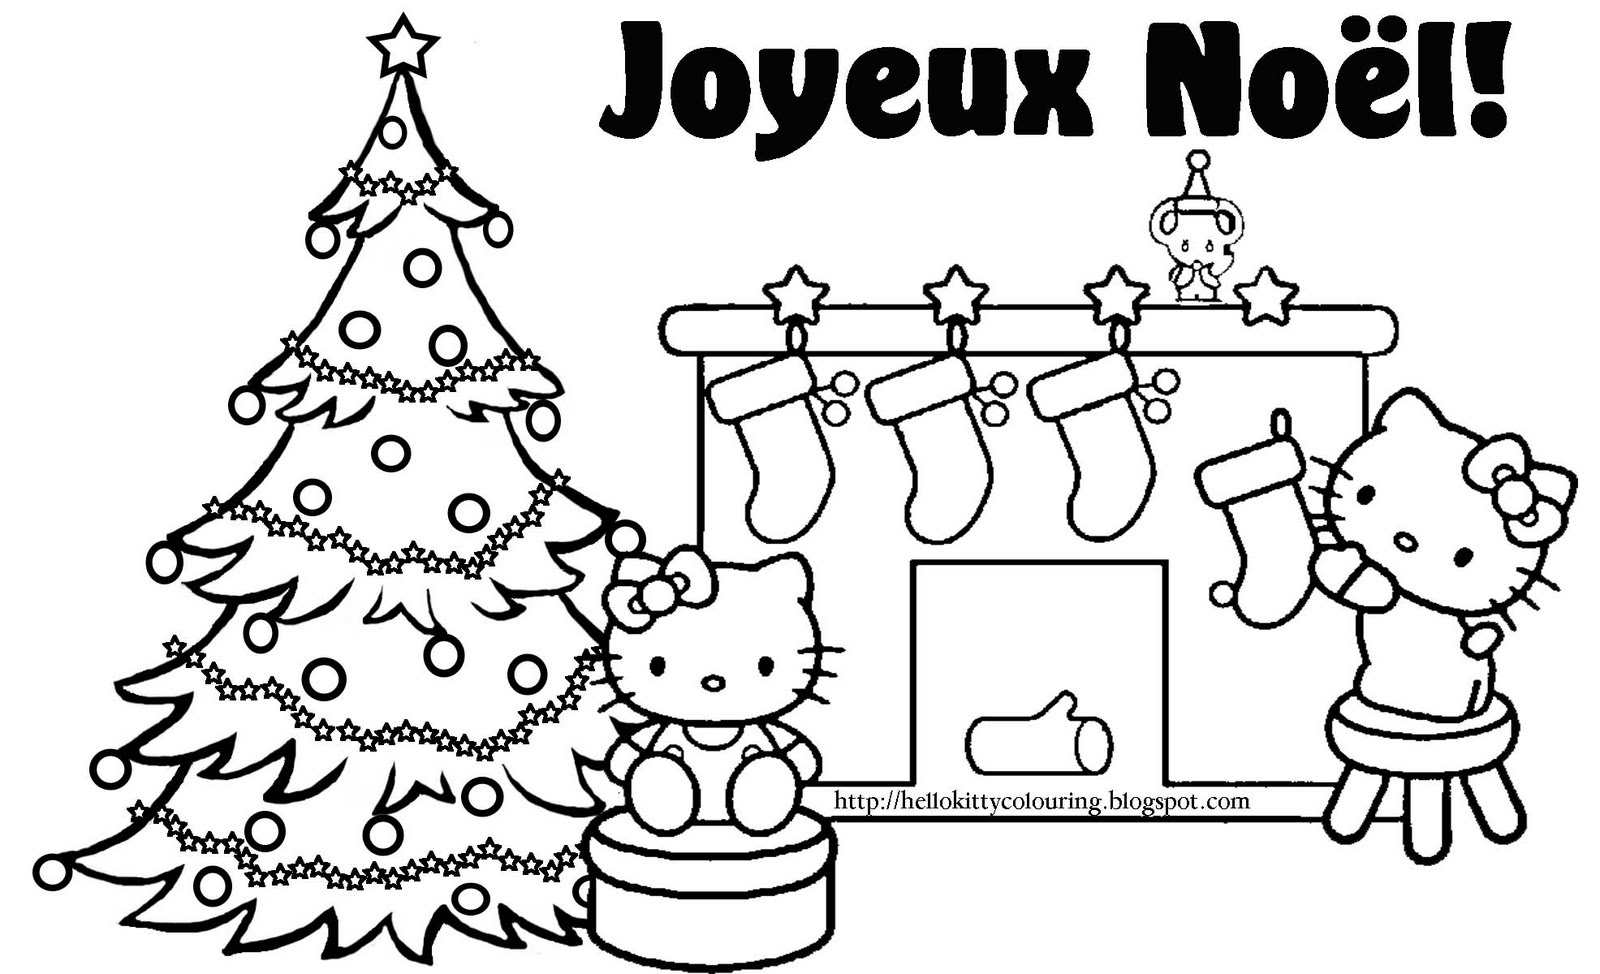 Hello Kitty Christmas Coloring Pages #2 | Hello Kitty Forever